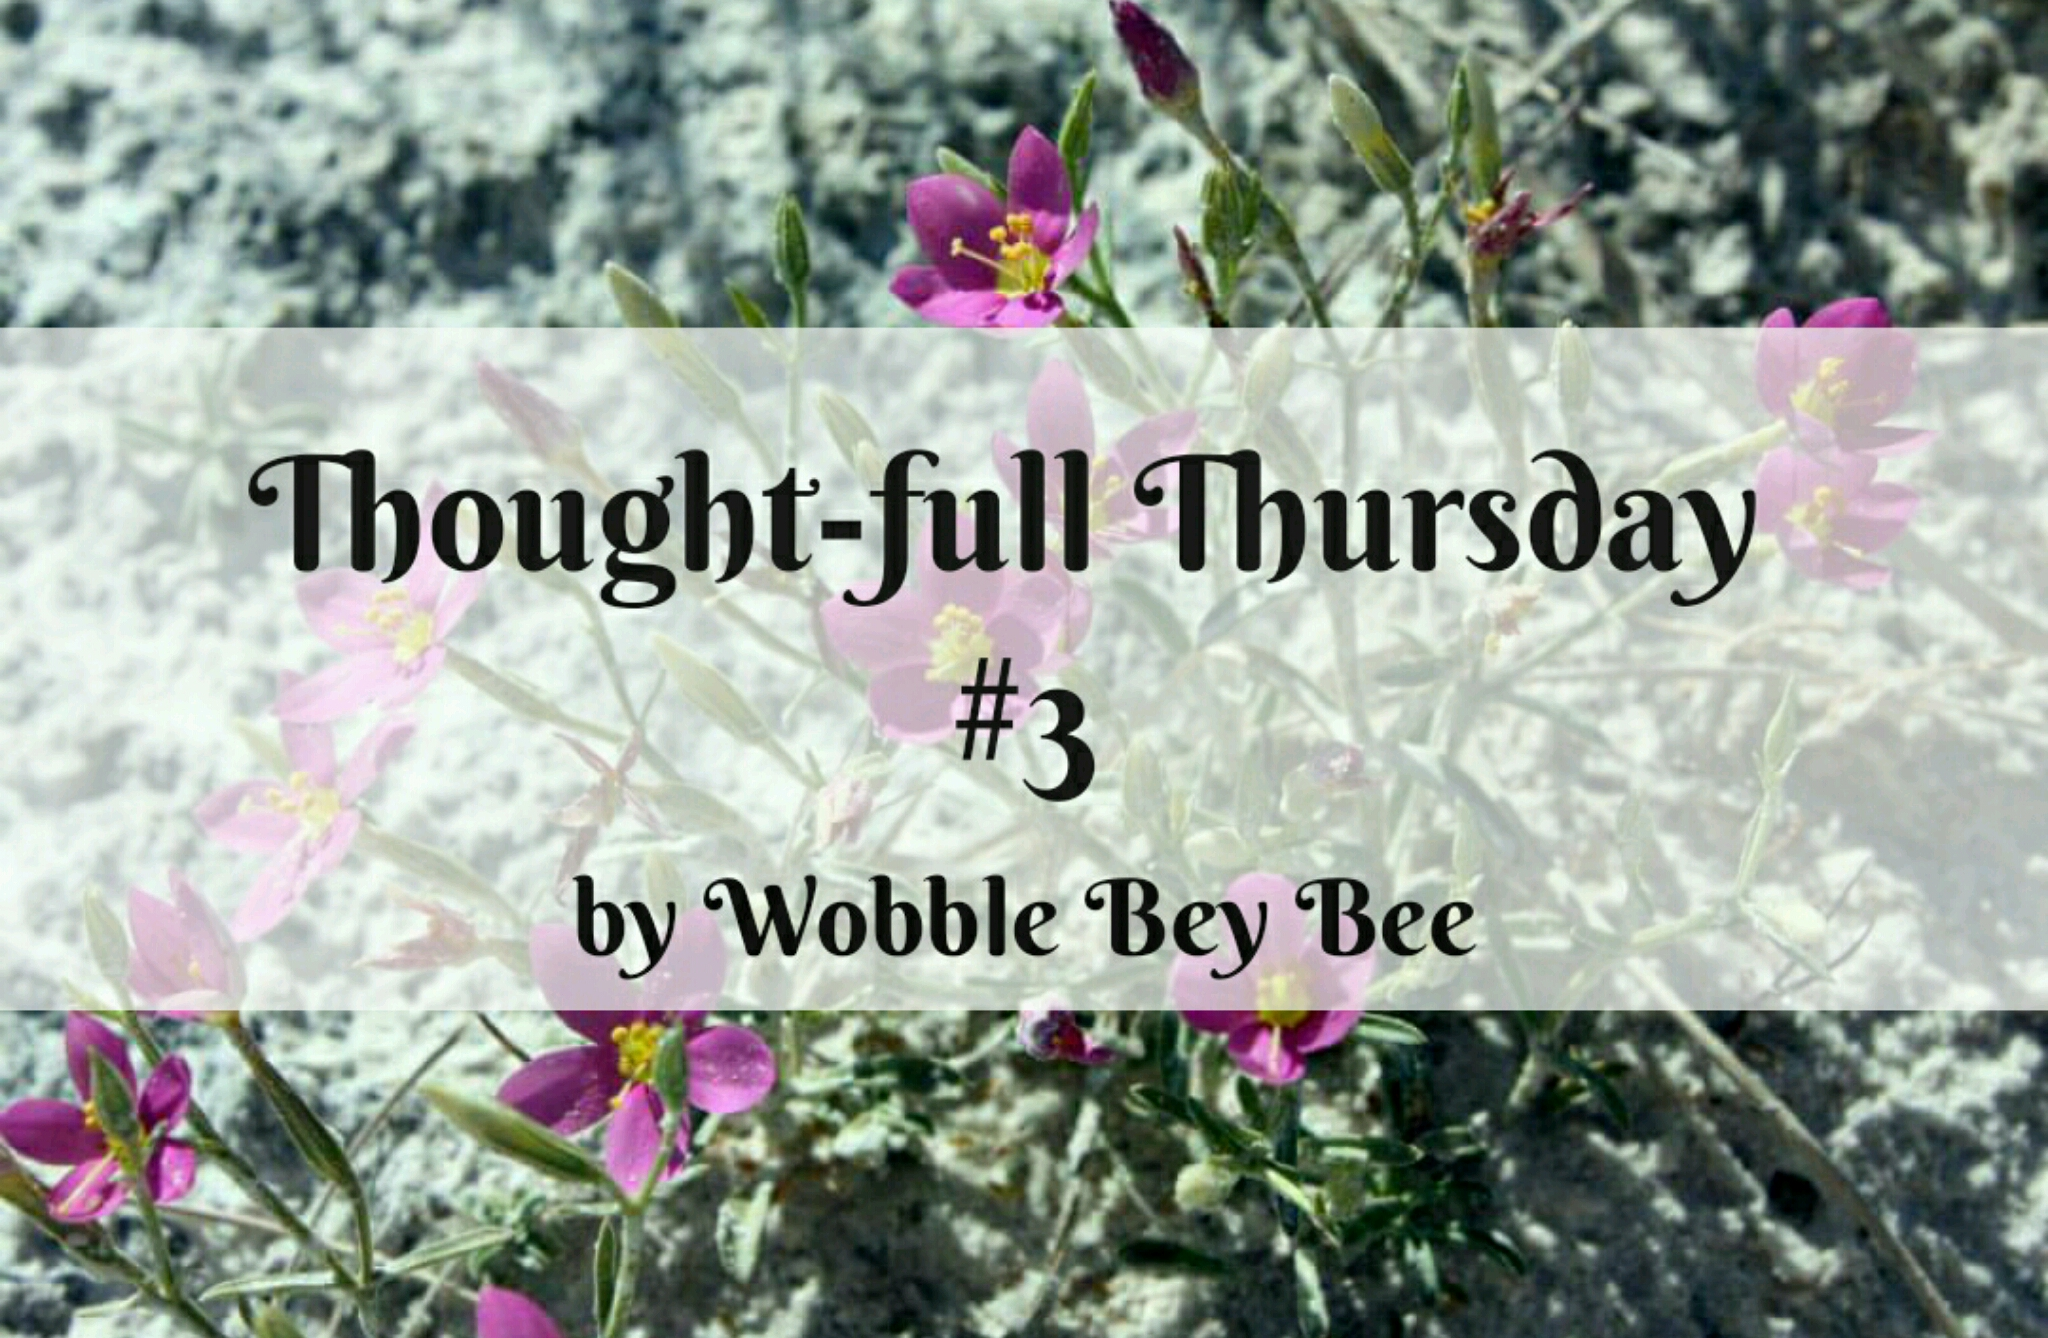 Thought-full Thursday #3